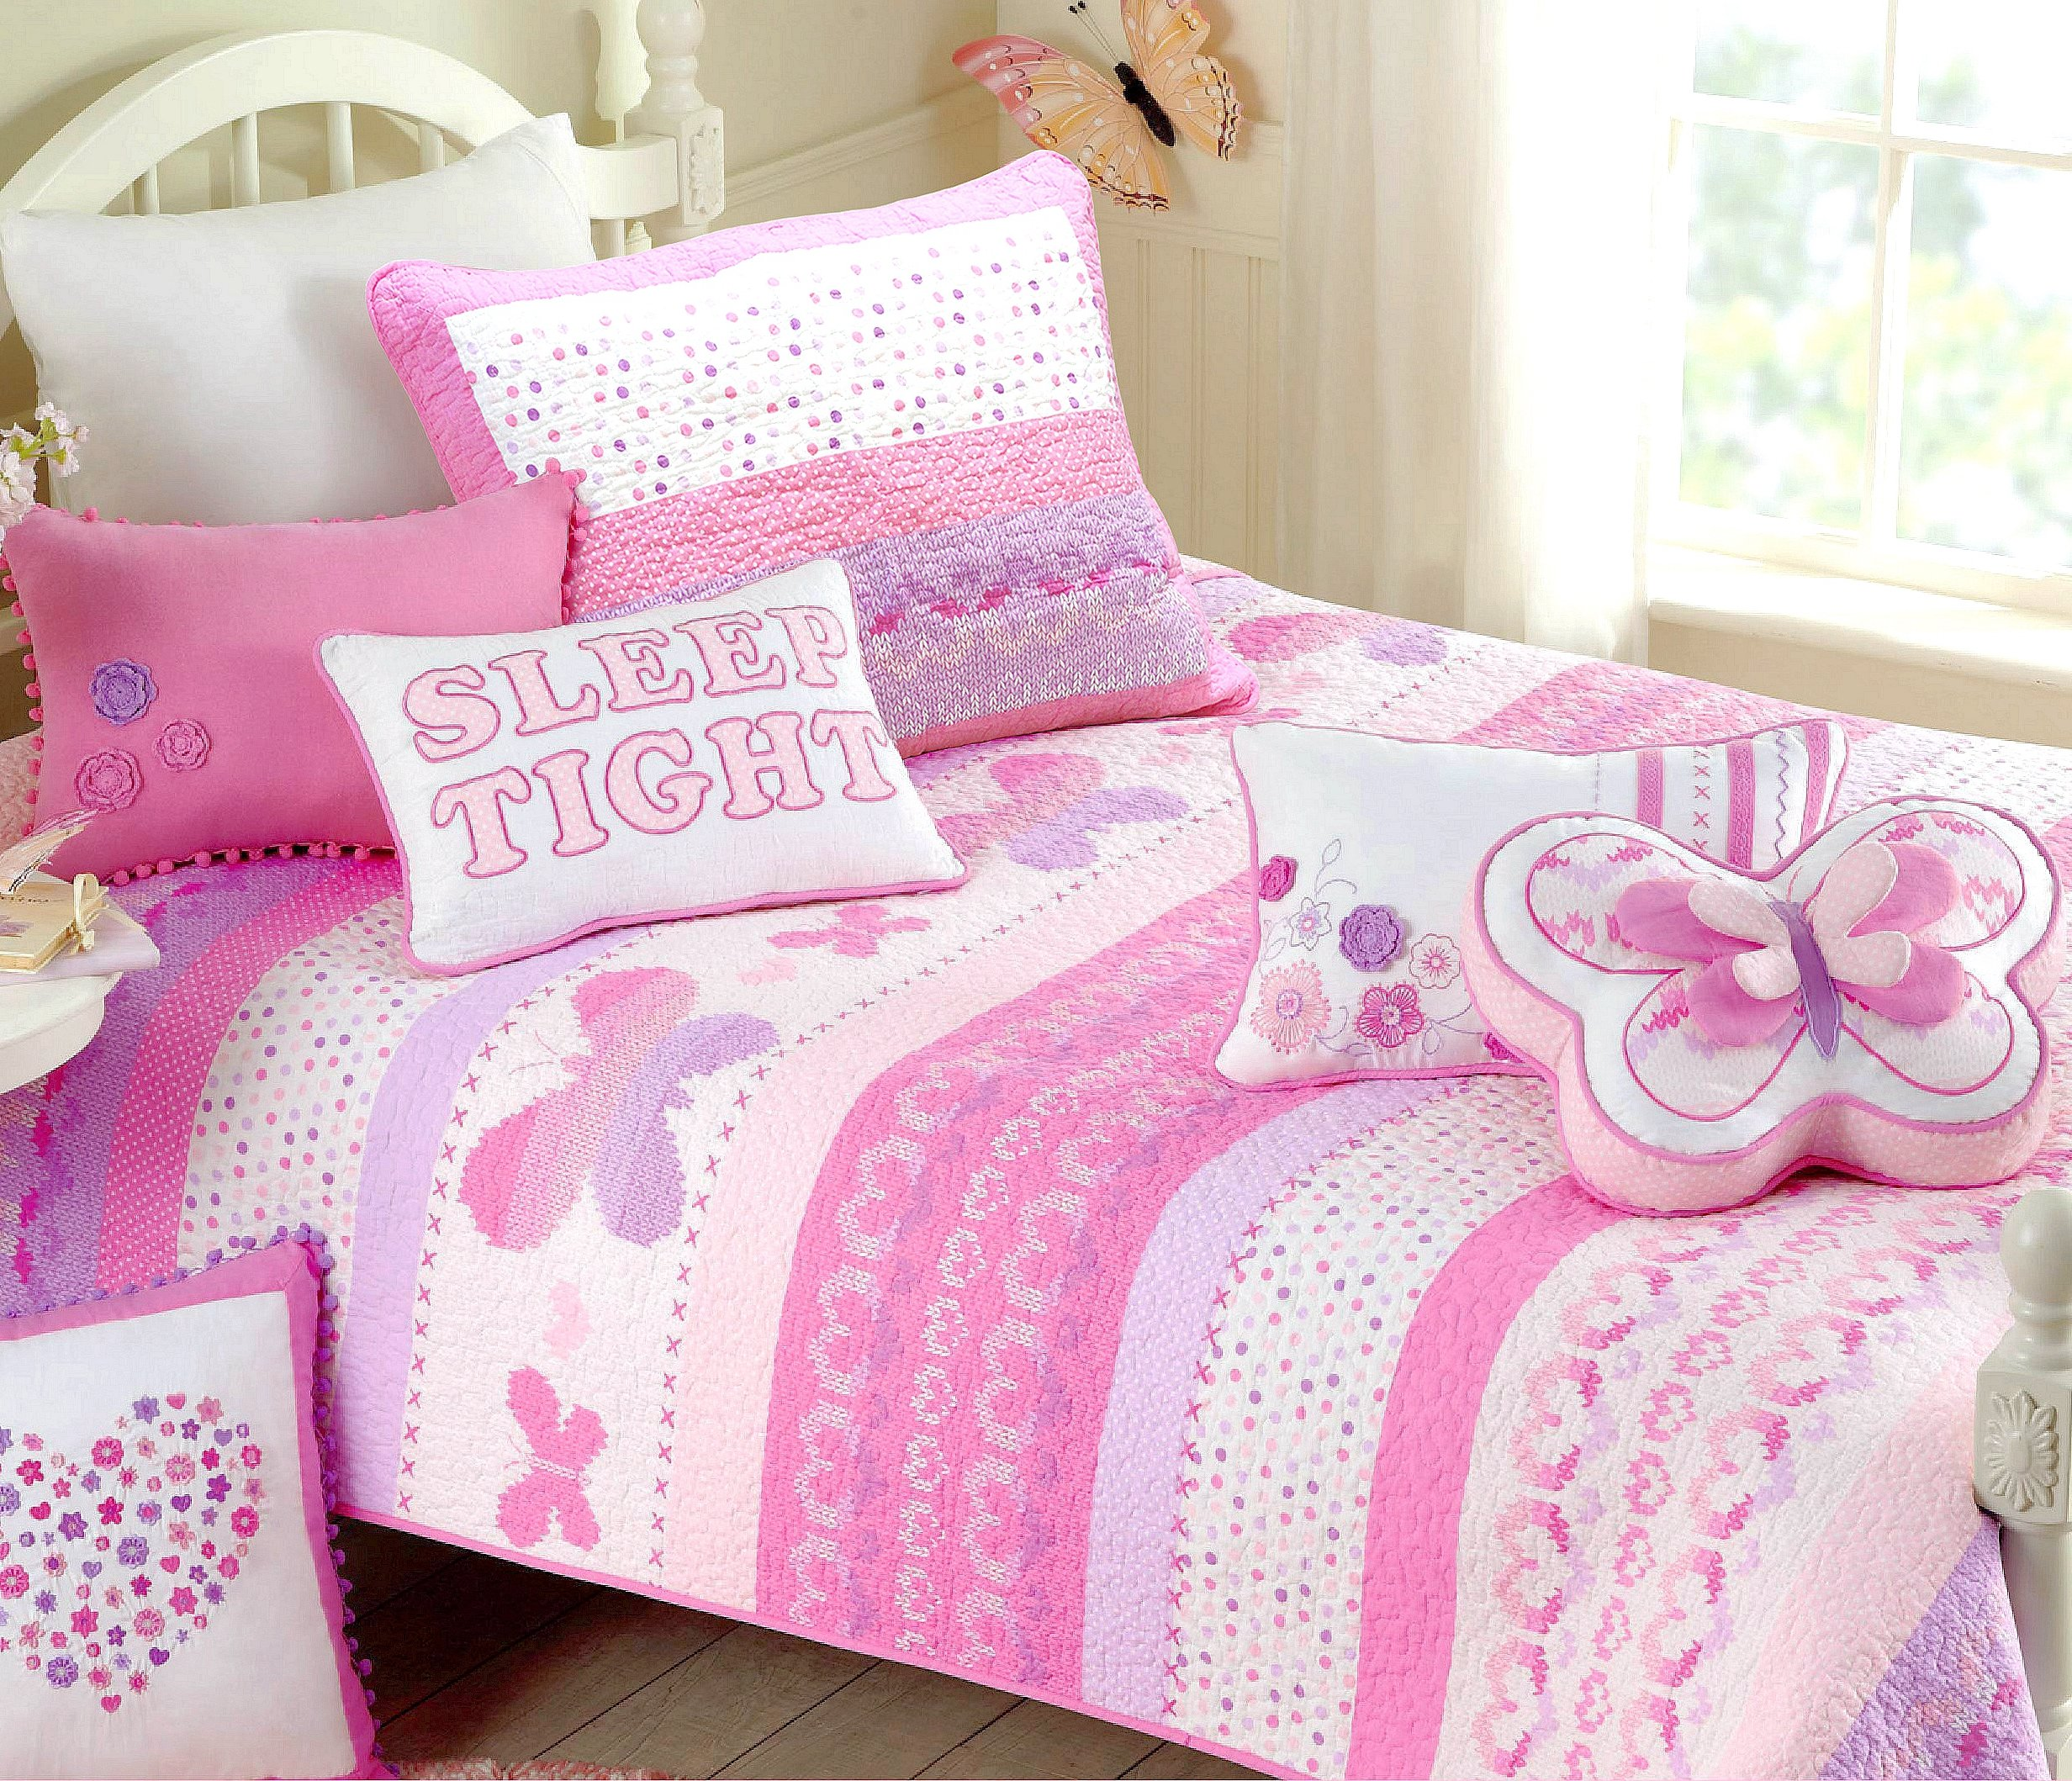 Cozy Line Home Fashions Butterfly Bedding Quilt Set, 3D Print Pattern Pink Orchid Light Purple Heart Dot 100 % COTTON Bedspread Coverlet for Kids Girl NEW Arrival(Butterfly Knit, Full/Queen - 3 piece)